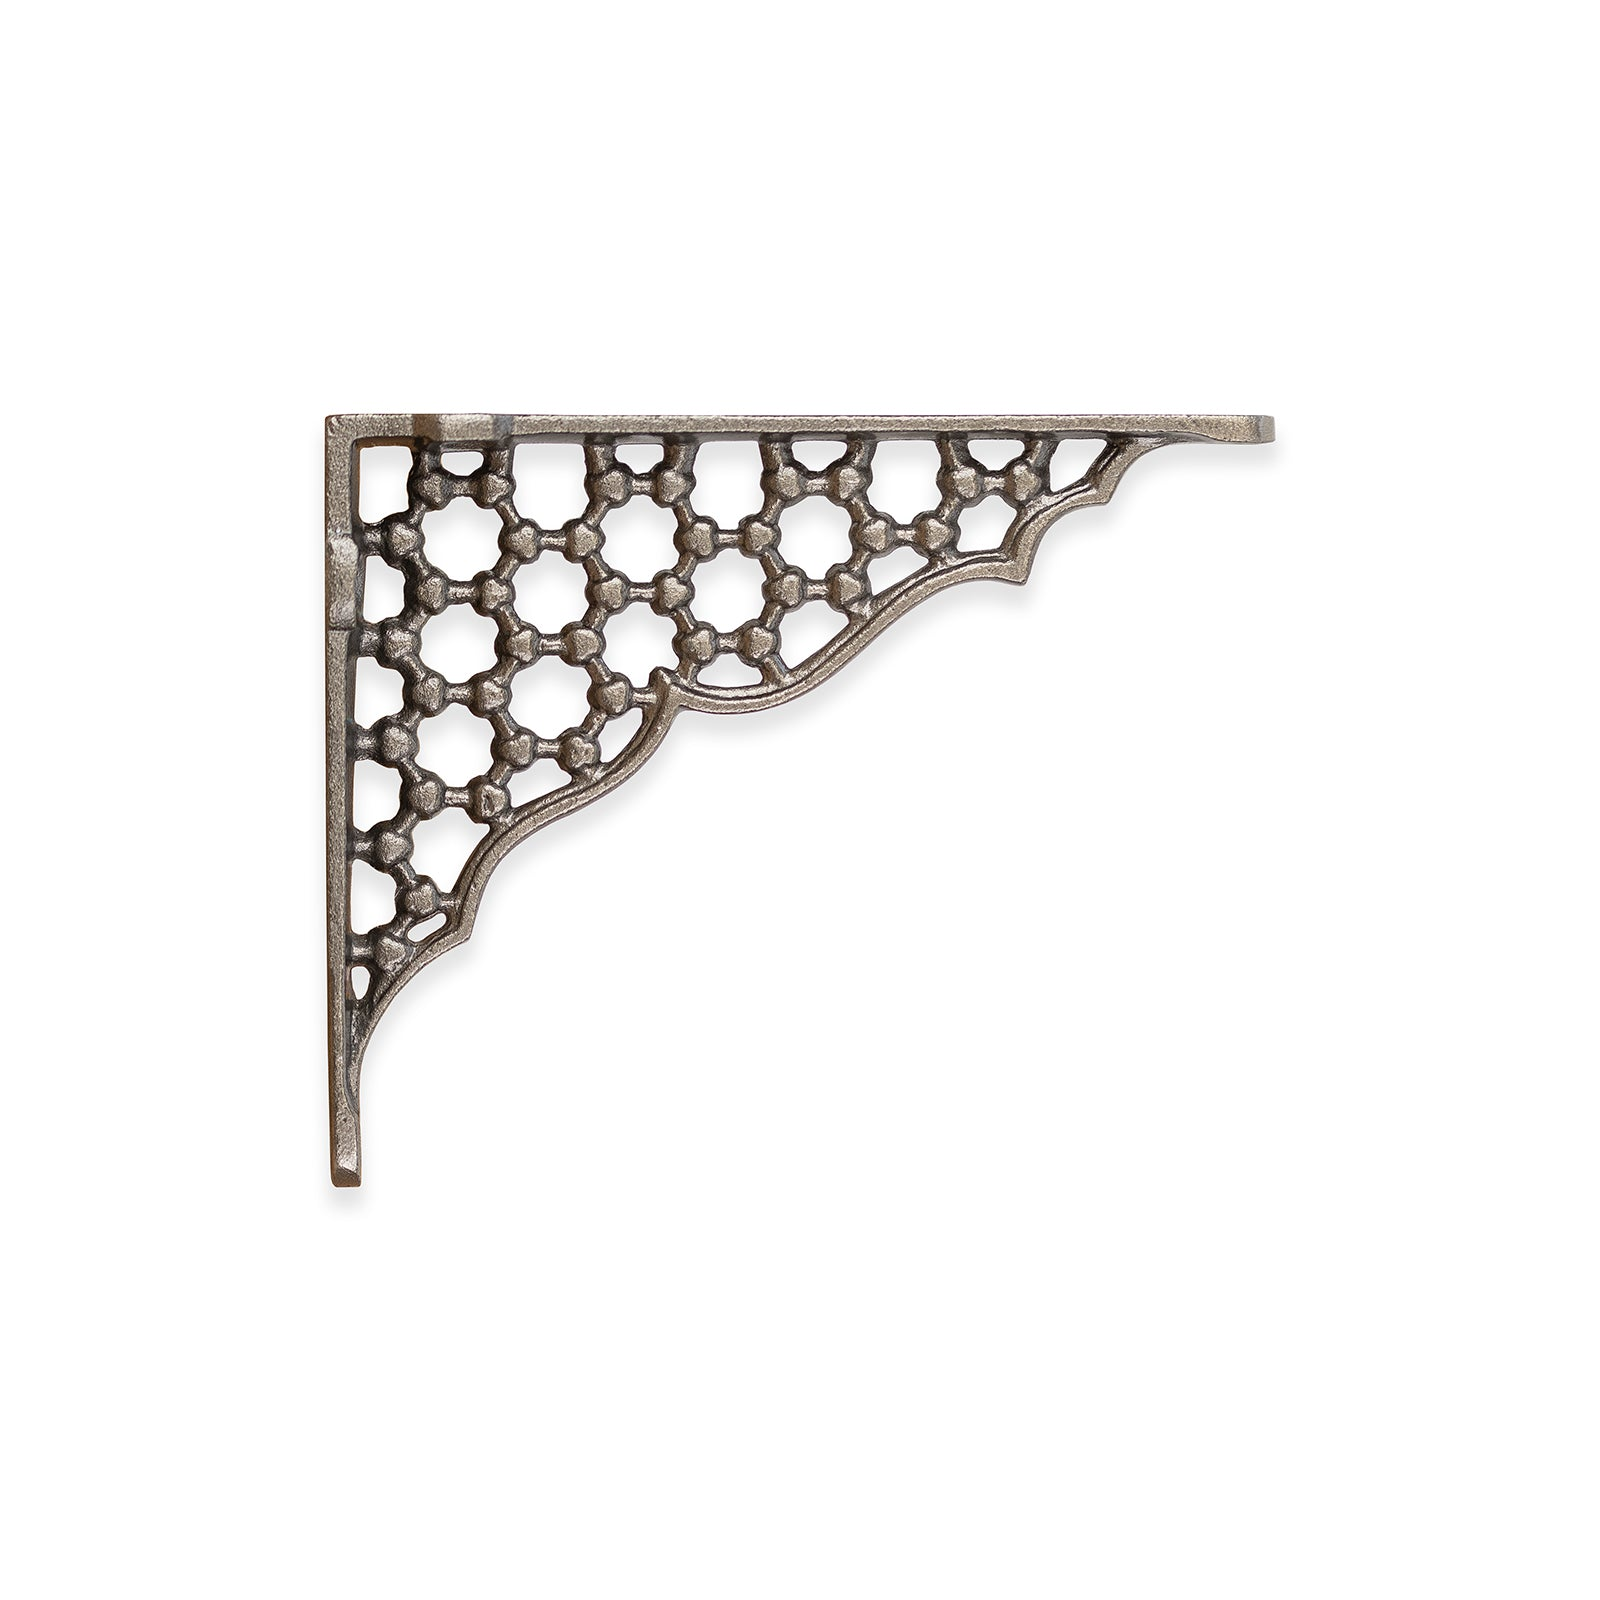 Cast Iron Shelf Bracket Honeycomb Design